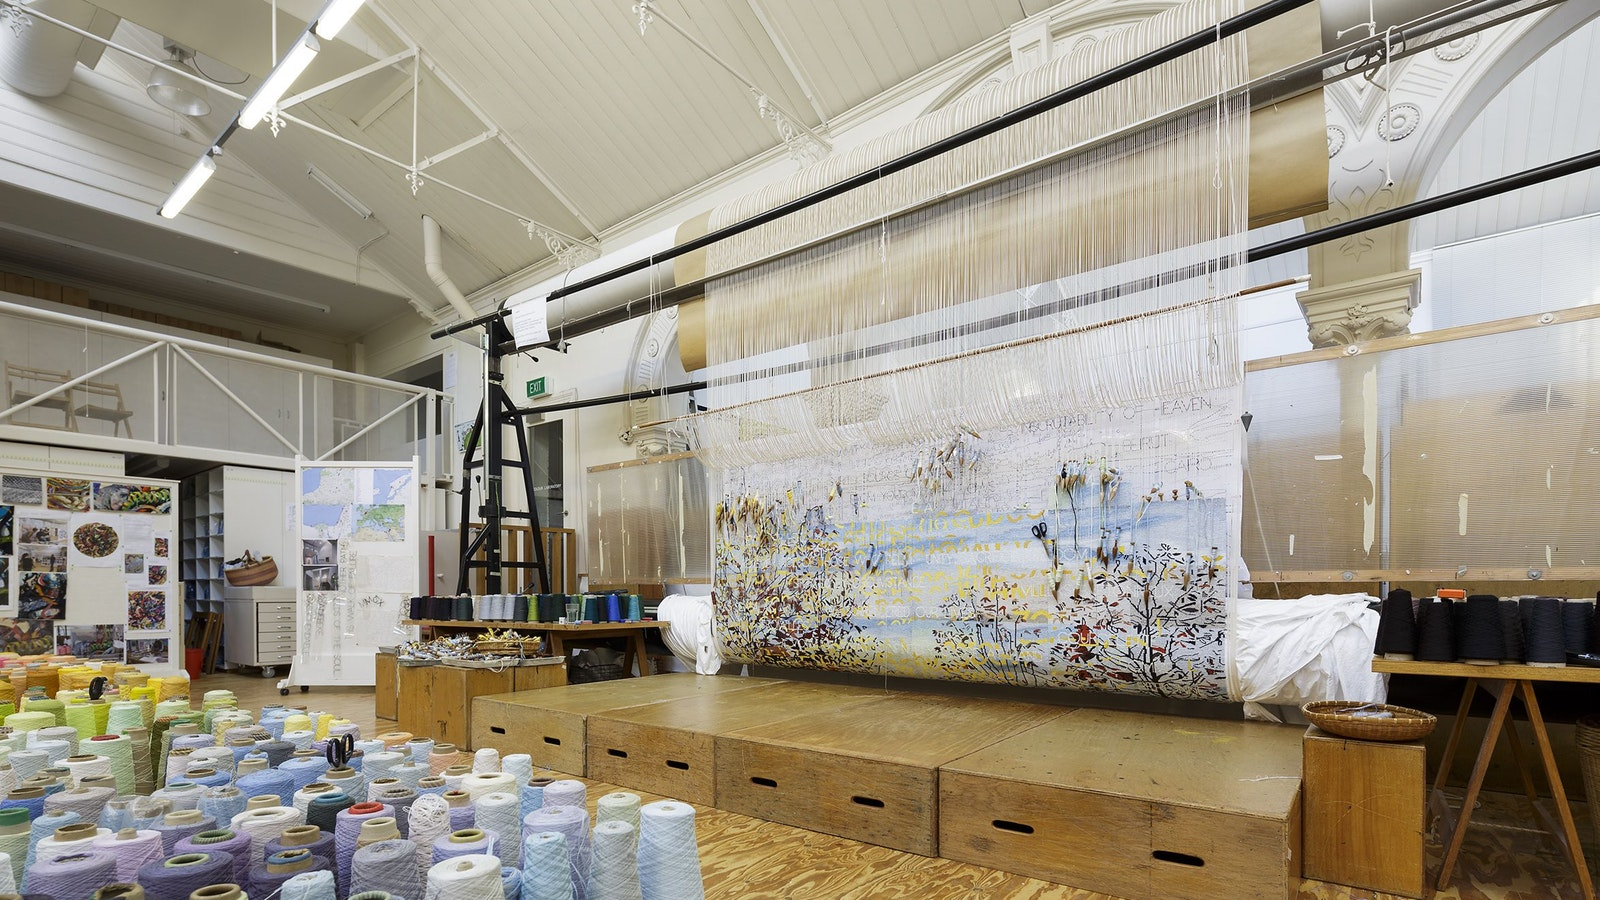 On the Loom:  Avenue of Remembrance, 2015  Artist: Imants Tillers